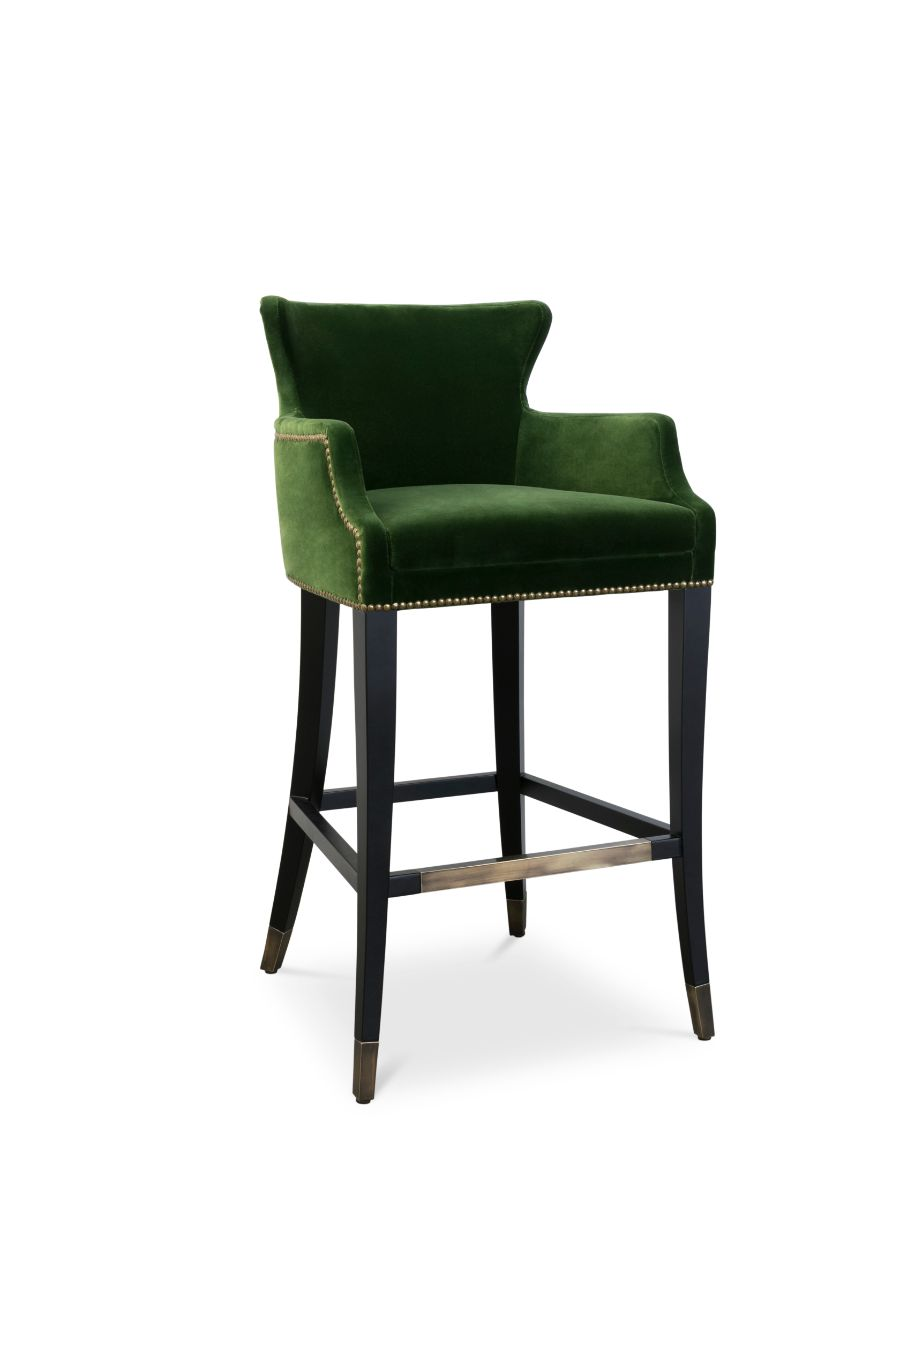 Bar Chairs & Stools That Set Trends Worldwide: 25 Fierce Trend Setters bar chairs Bar Chairs & Stools That Set Trends Worldwide: 25 Fierce Trend Setters Bar Chairs Stools That Set Trends Worldwide 25 Fierce Trend Setters 2